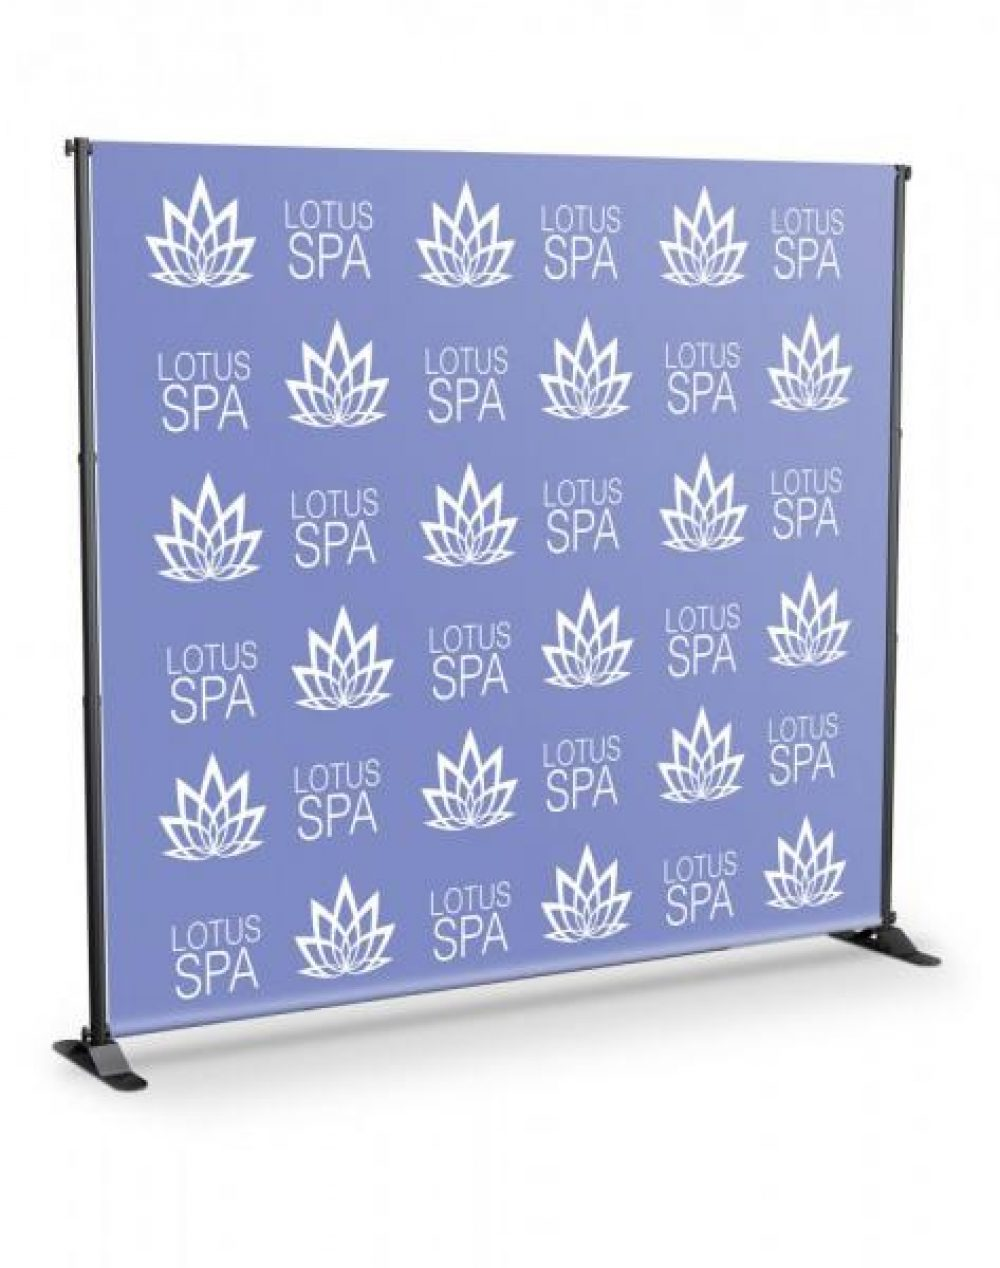 8x8 step and repeat banner stands